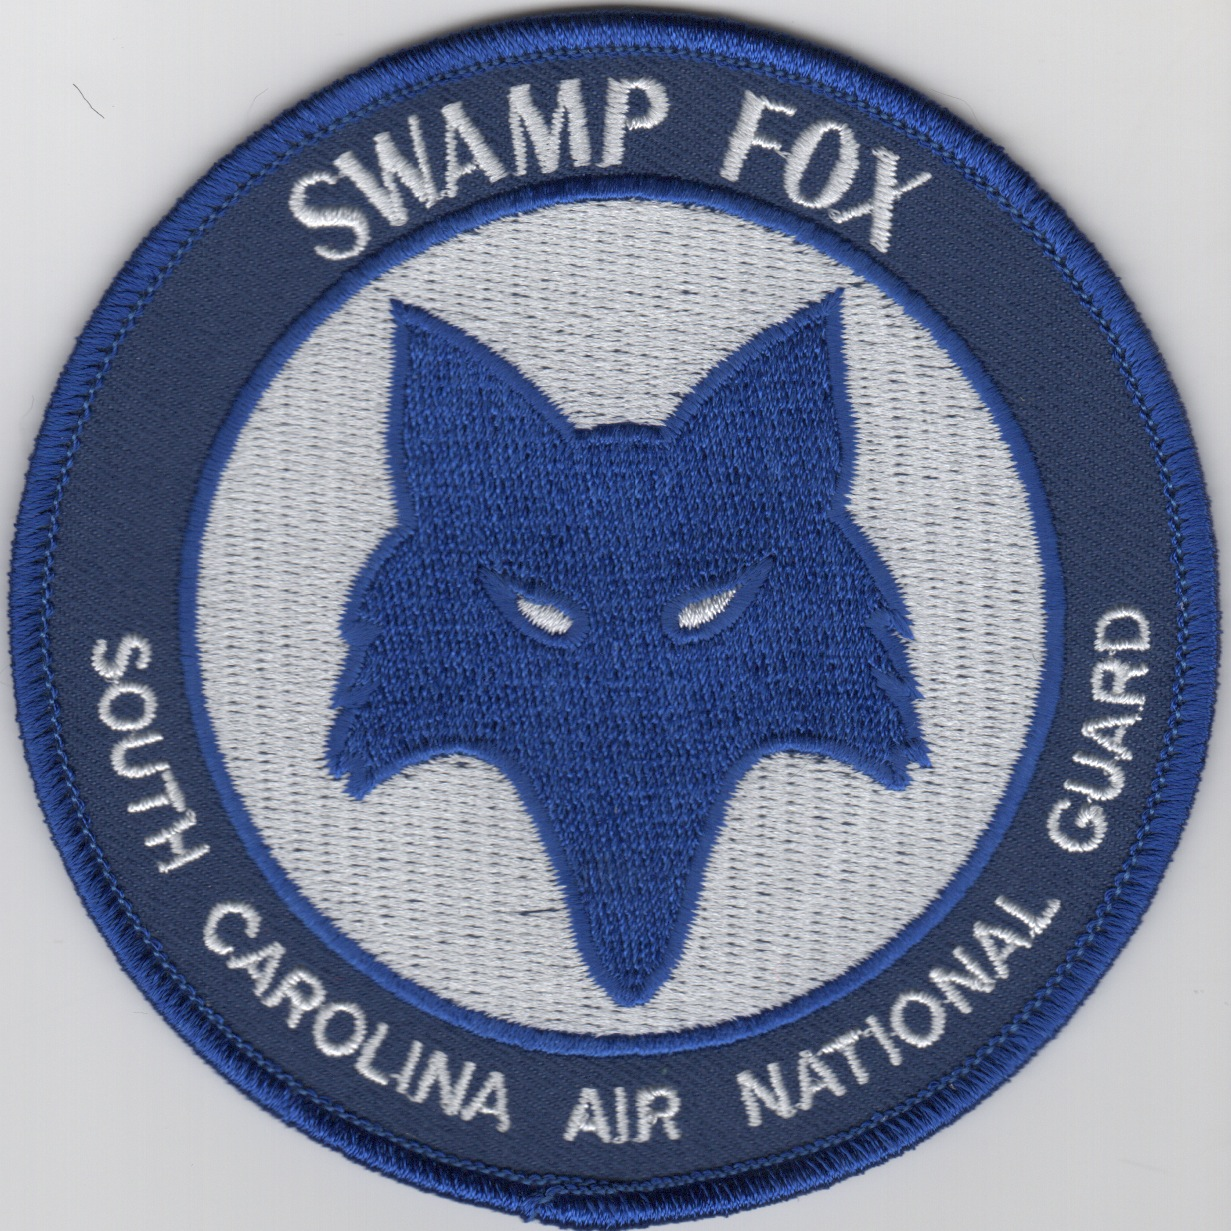 169FW/SCANG 'Swamp Fox' (Blue Foxhead)